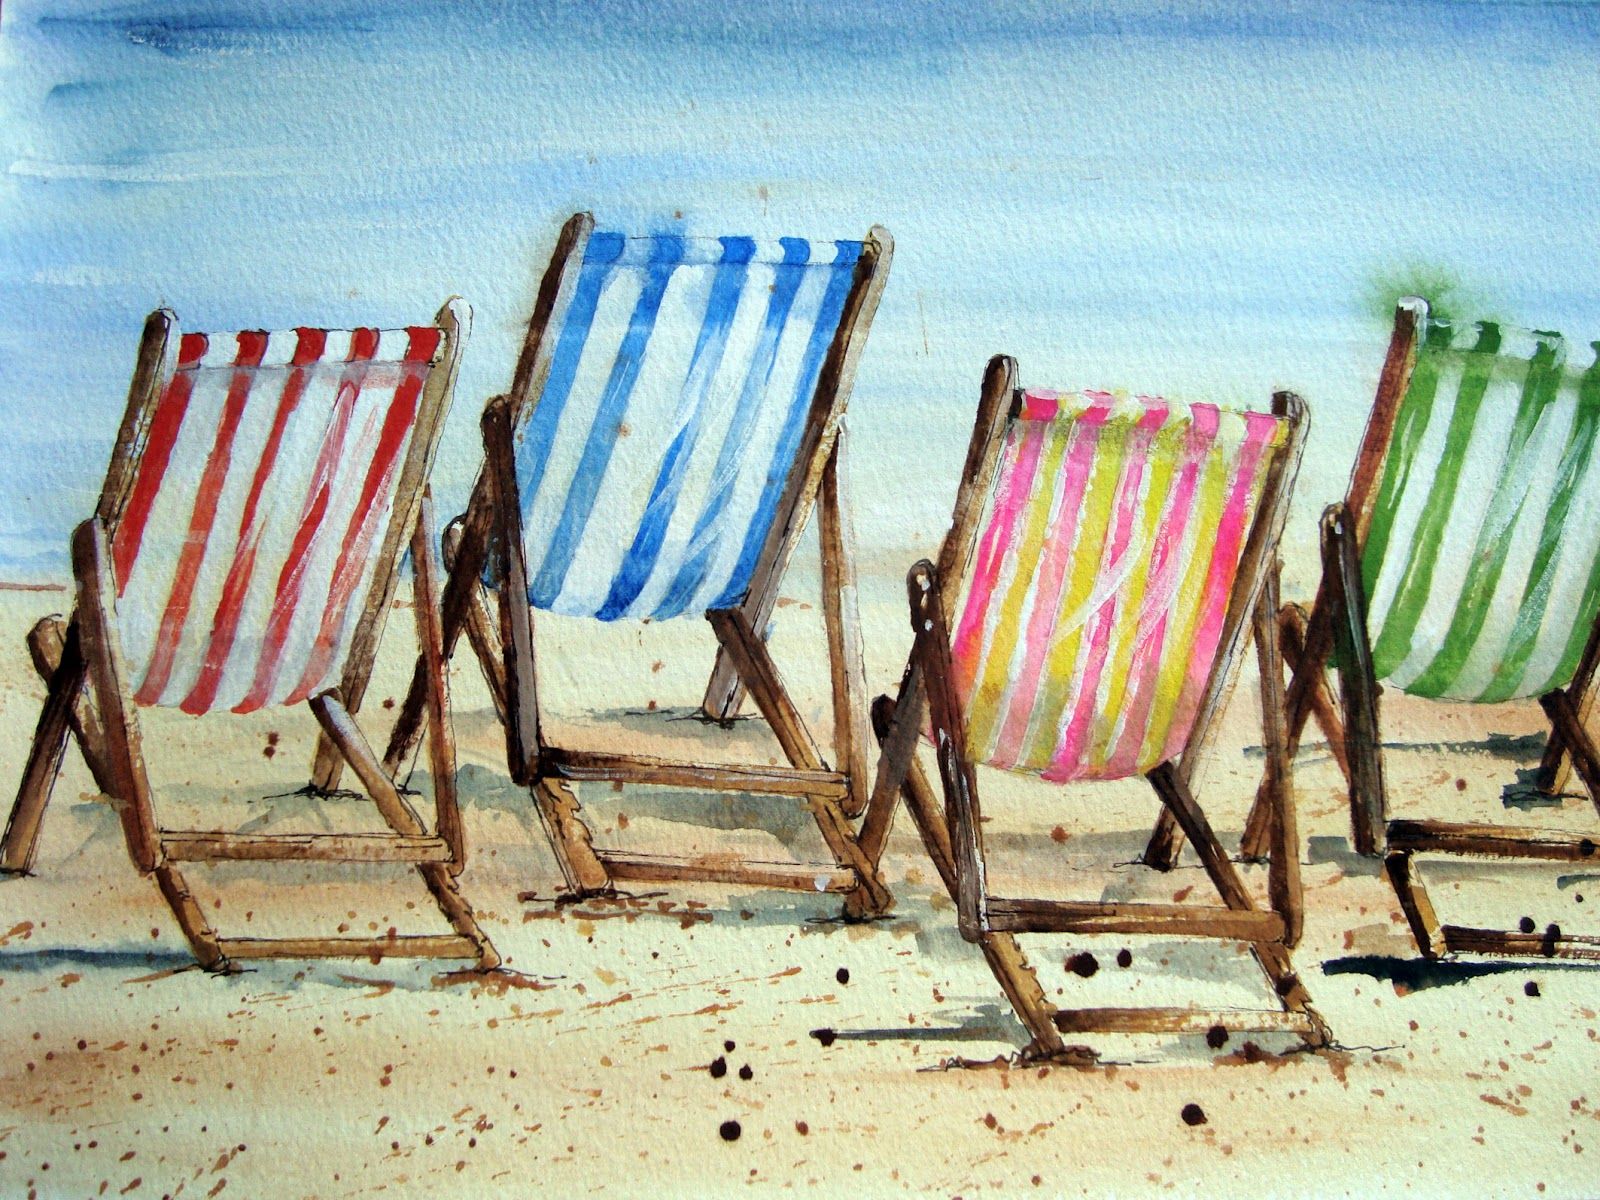 Beach chair drawing - I Had No Desire To Draw Each Individual Chair I M Hopeless At Things Like This So I Spent Ages Drawing One Chair As Accurately As Possible On An Old Piece